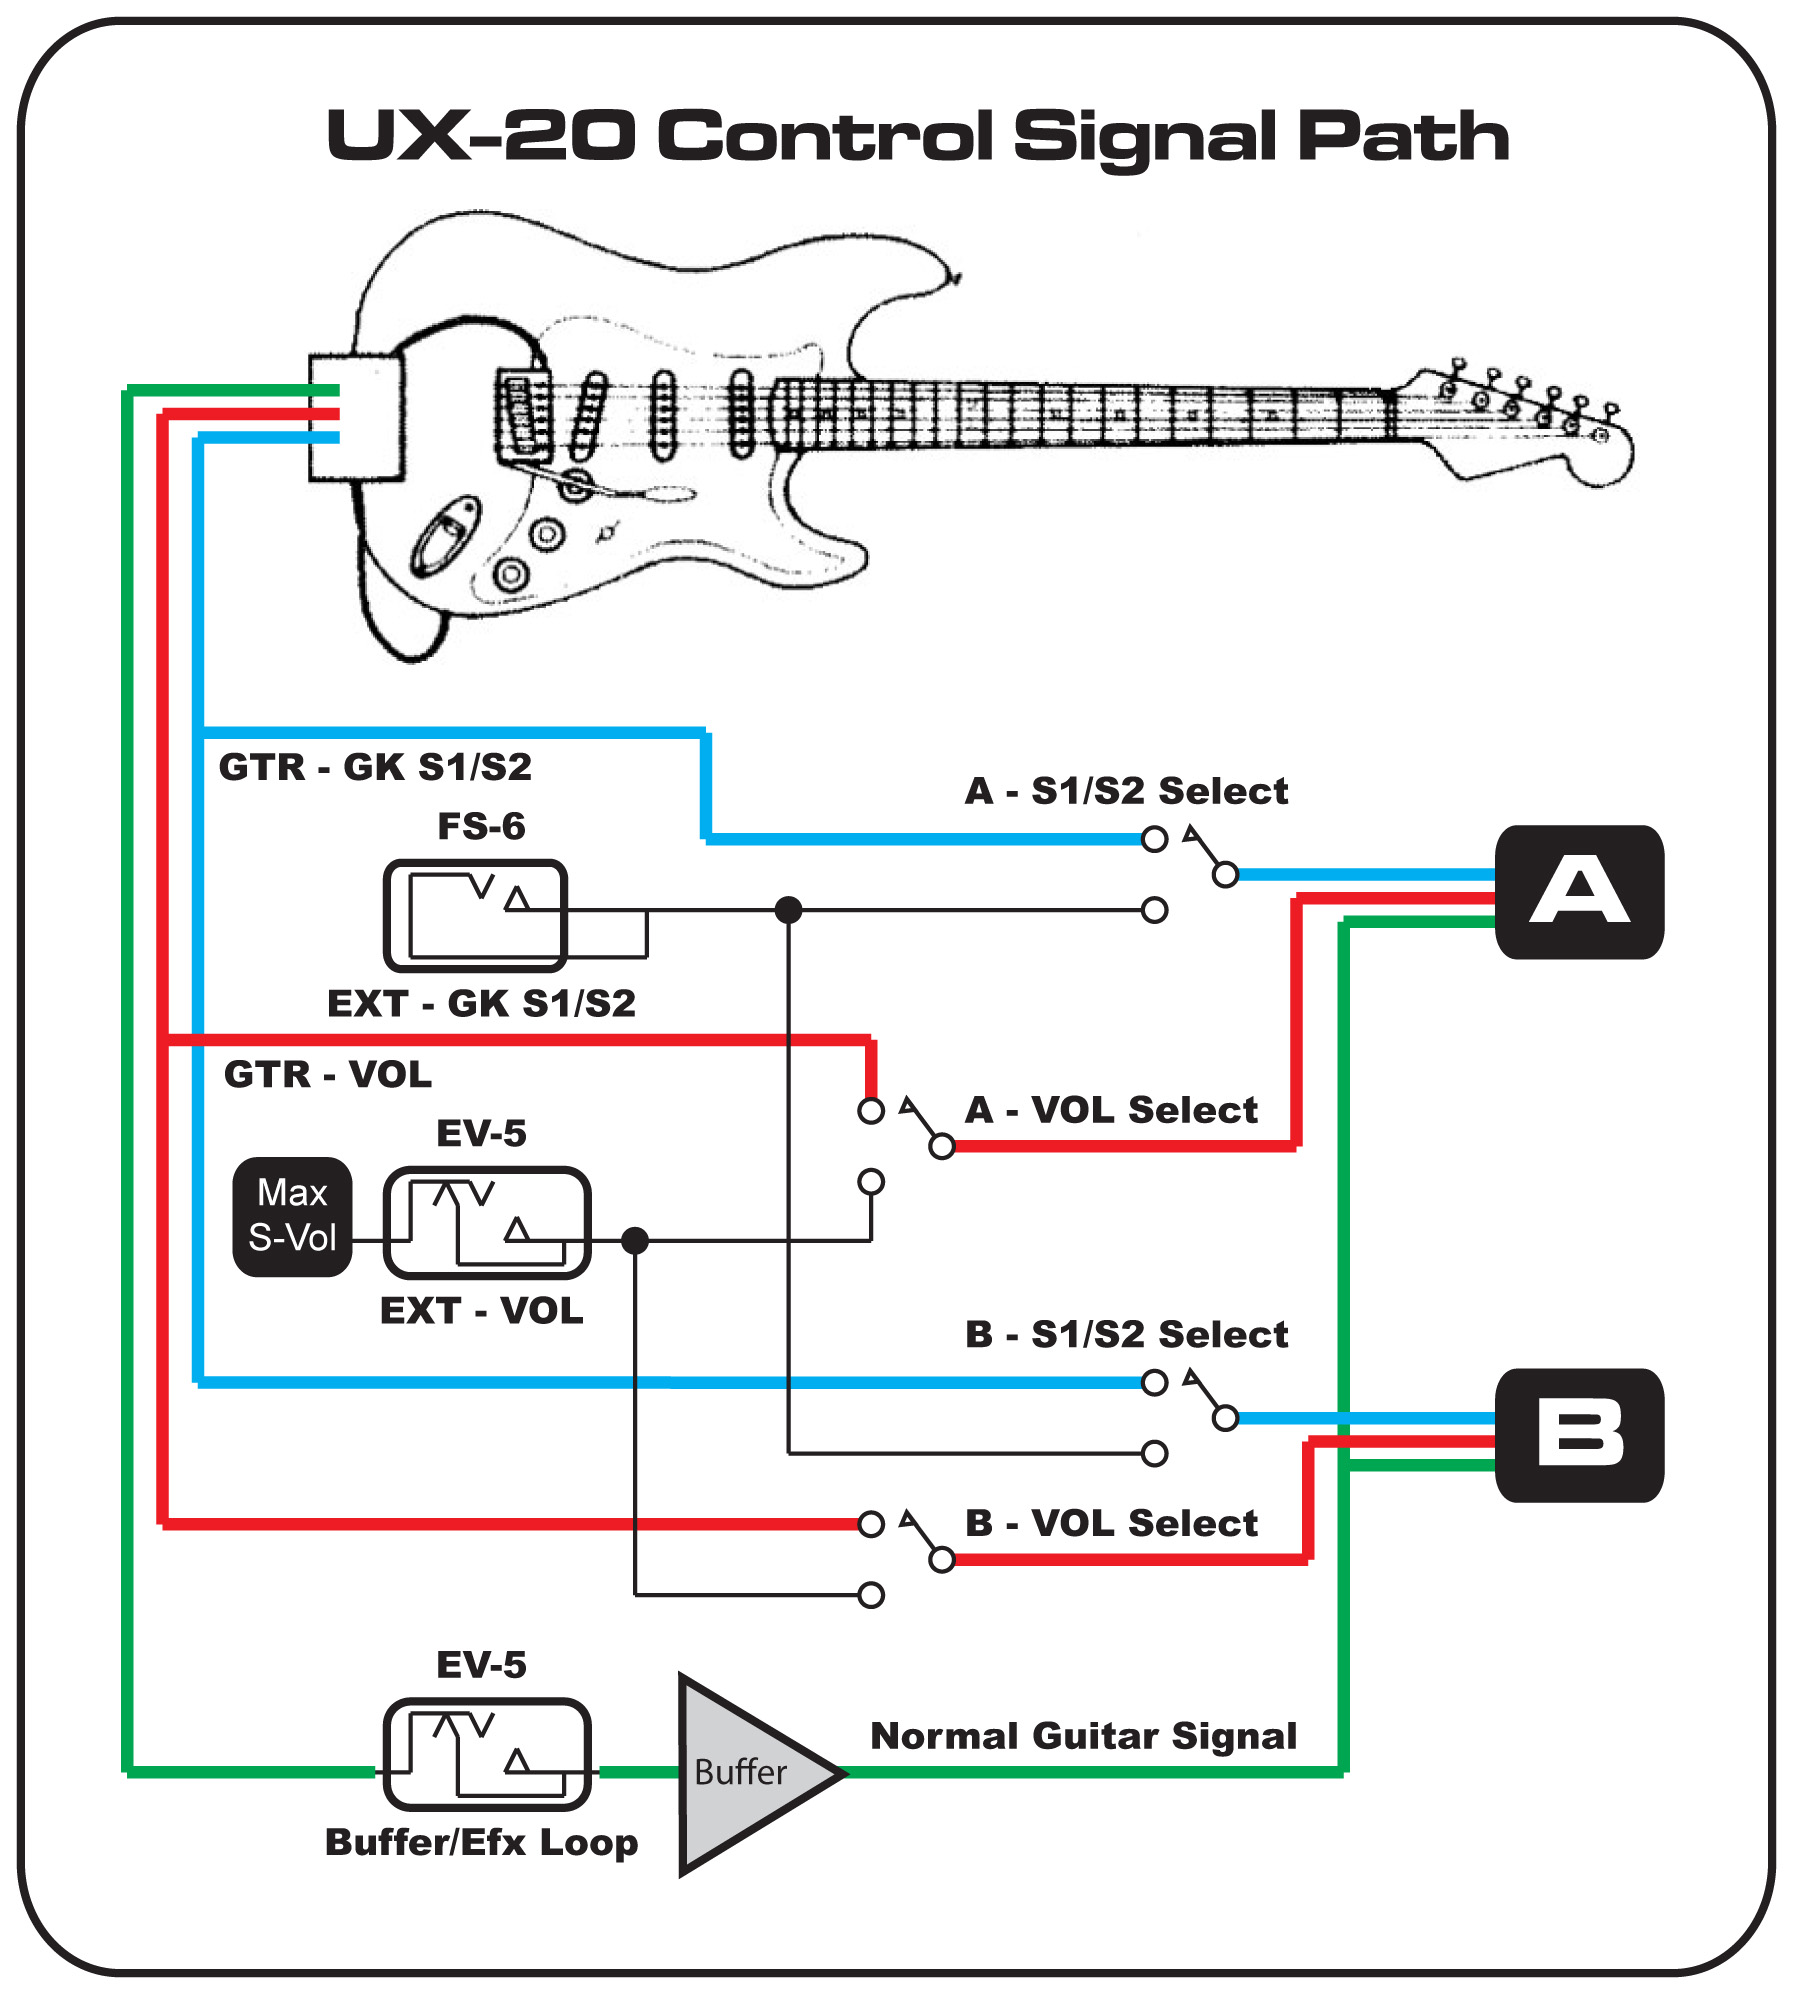 UX-20 13-pin Splitter/Distributor with Buffered Guitar Input